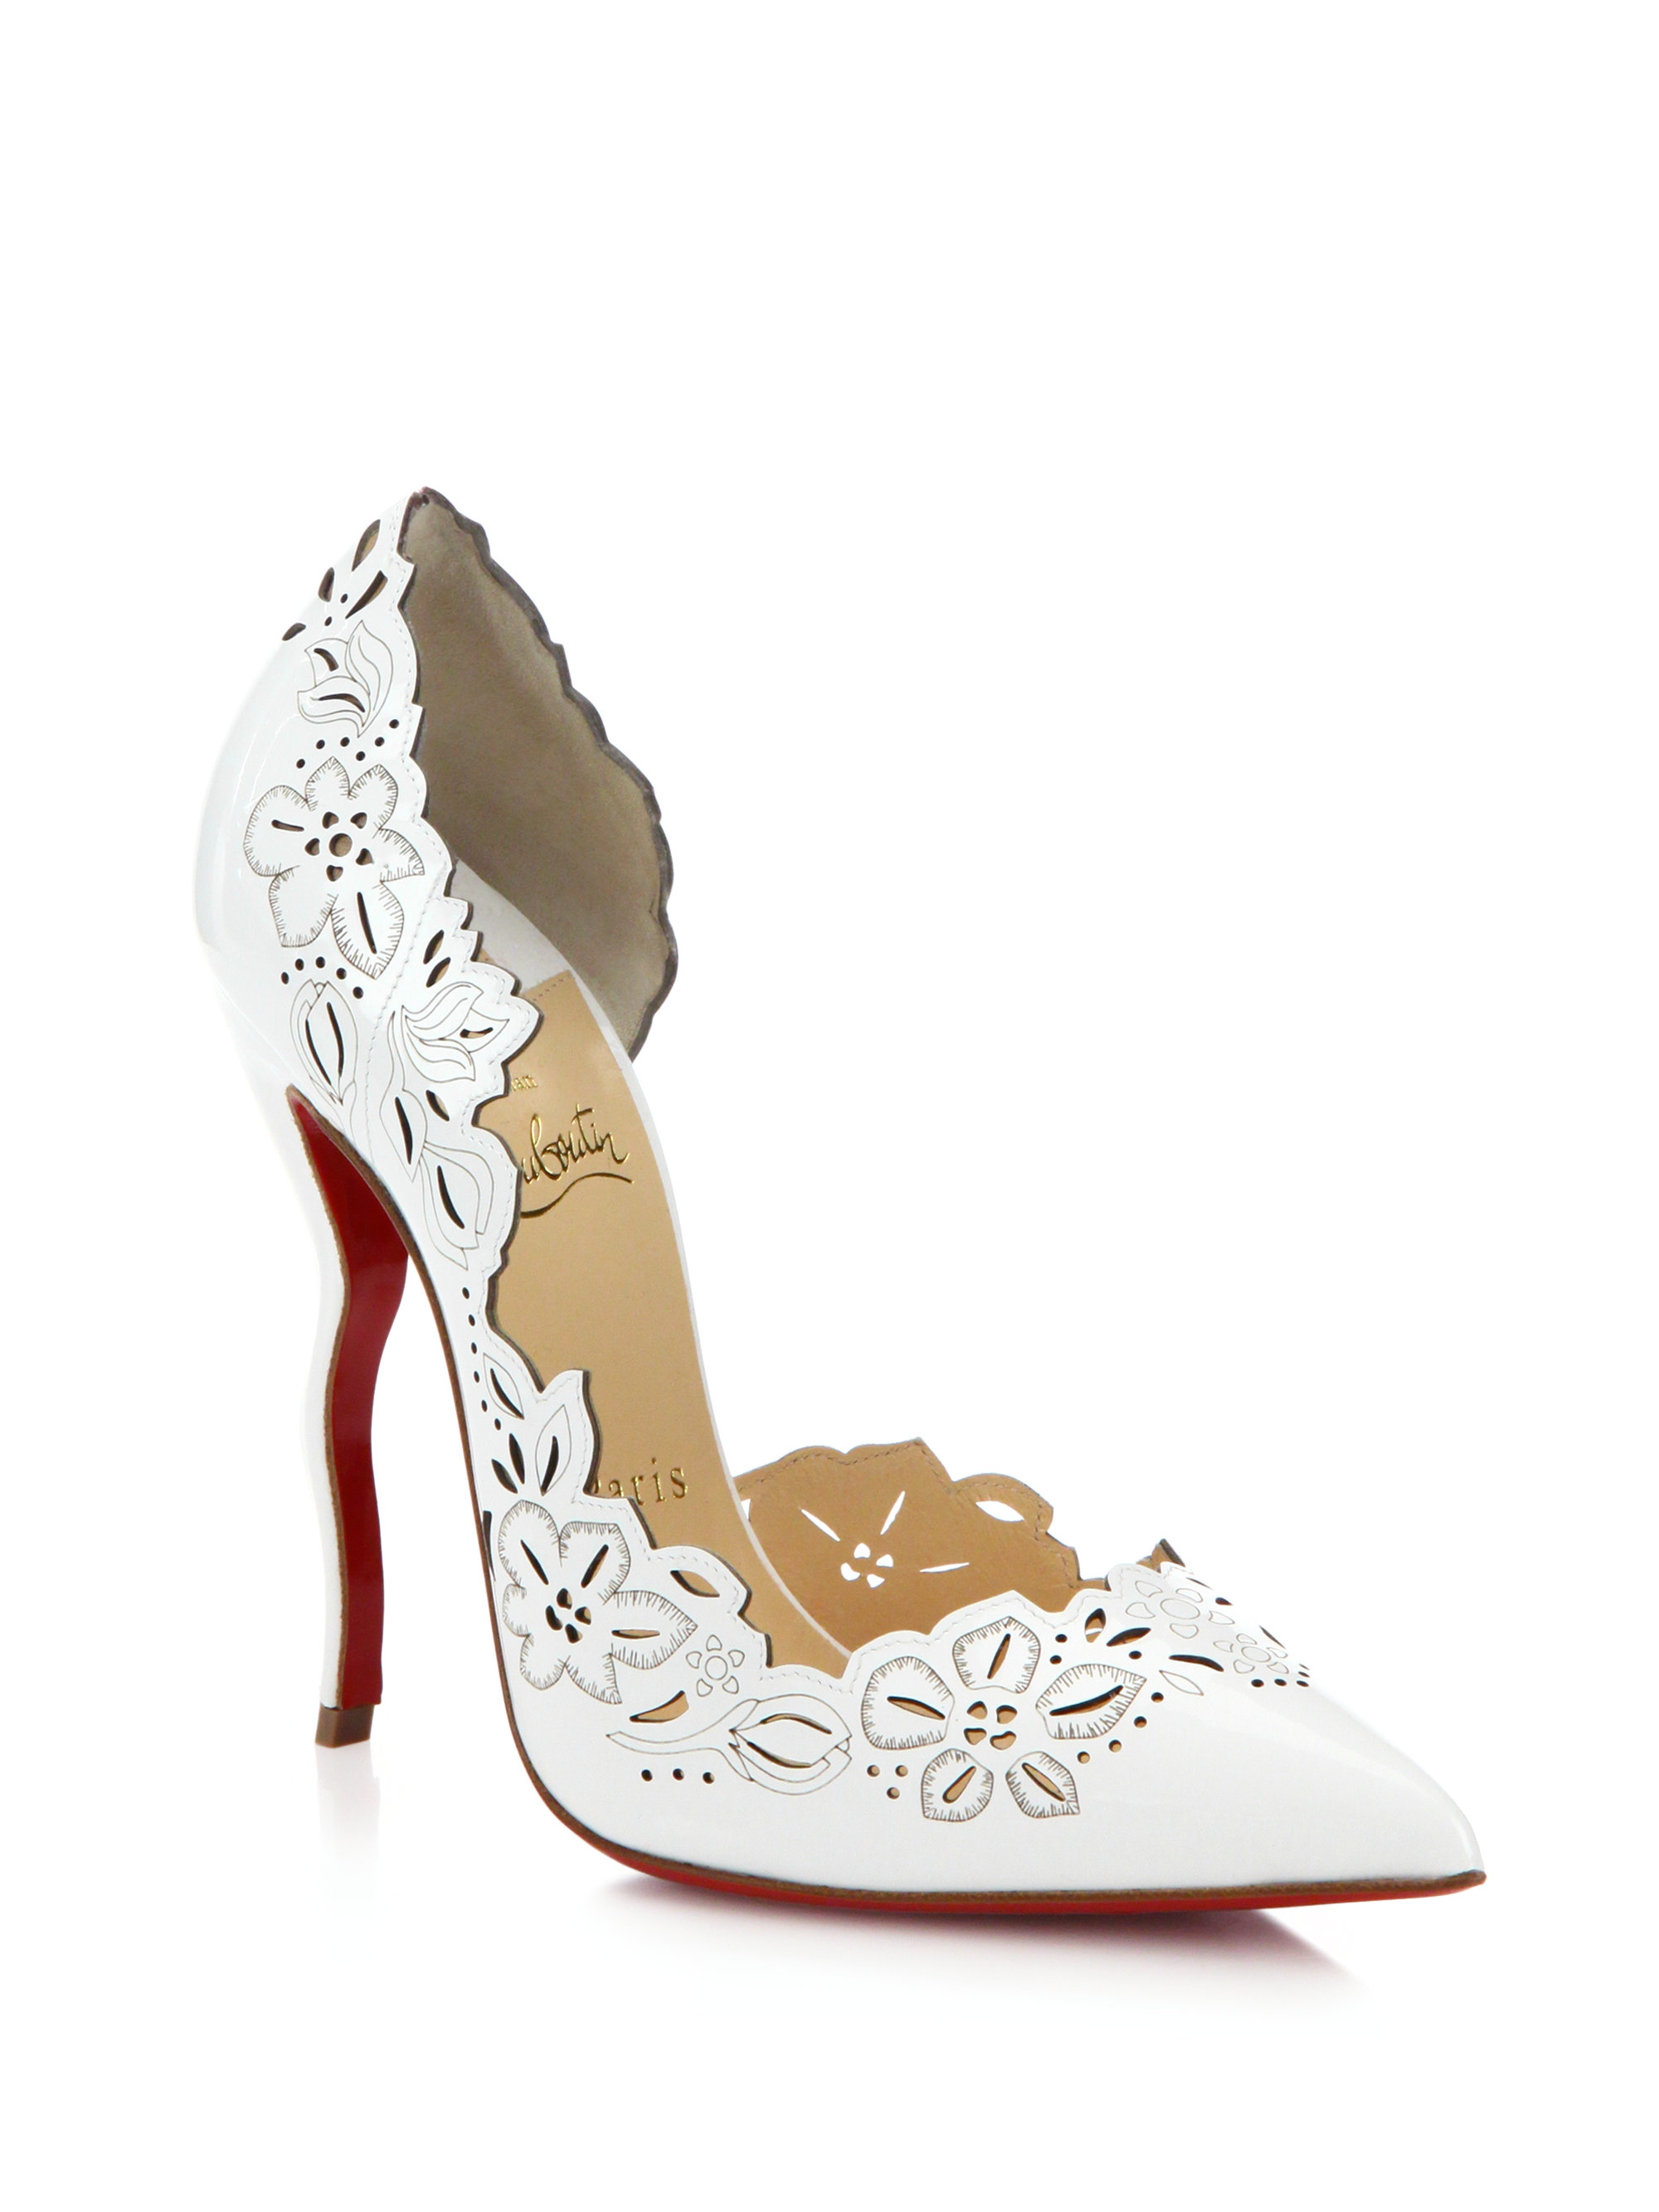 05ea1f55e0db Lyst - Christian Louboutin Beloved Laser-cut Patent Leather Pumps in ...